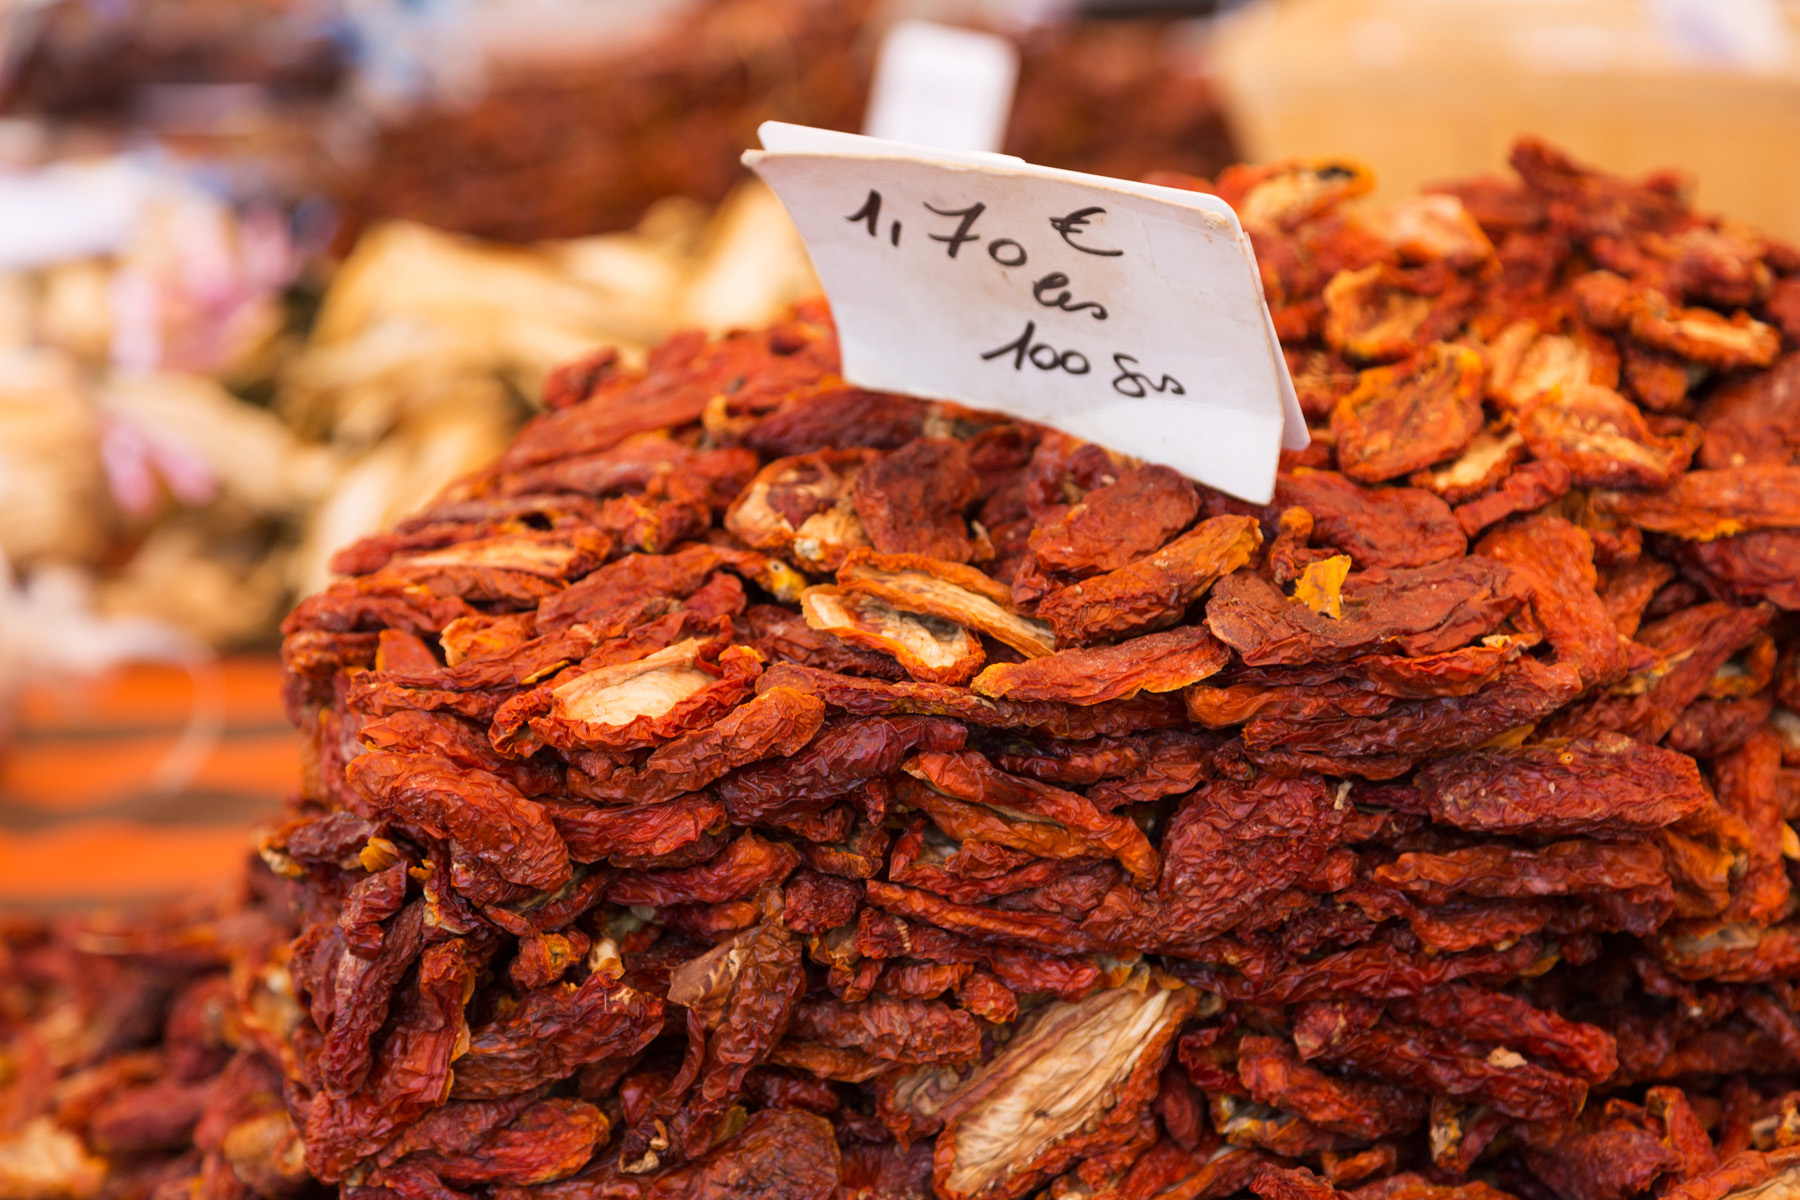 Cours Saleya Market in Nice, France